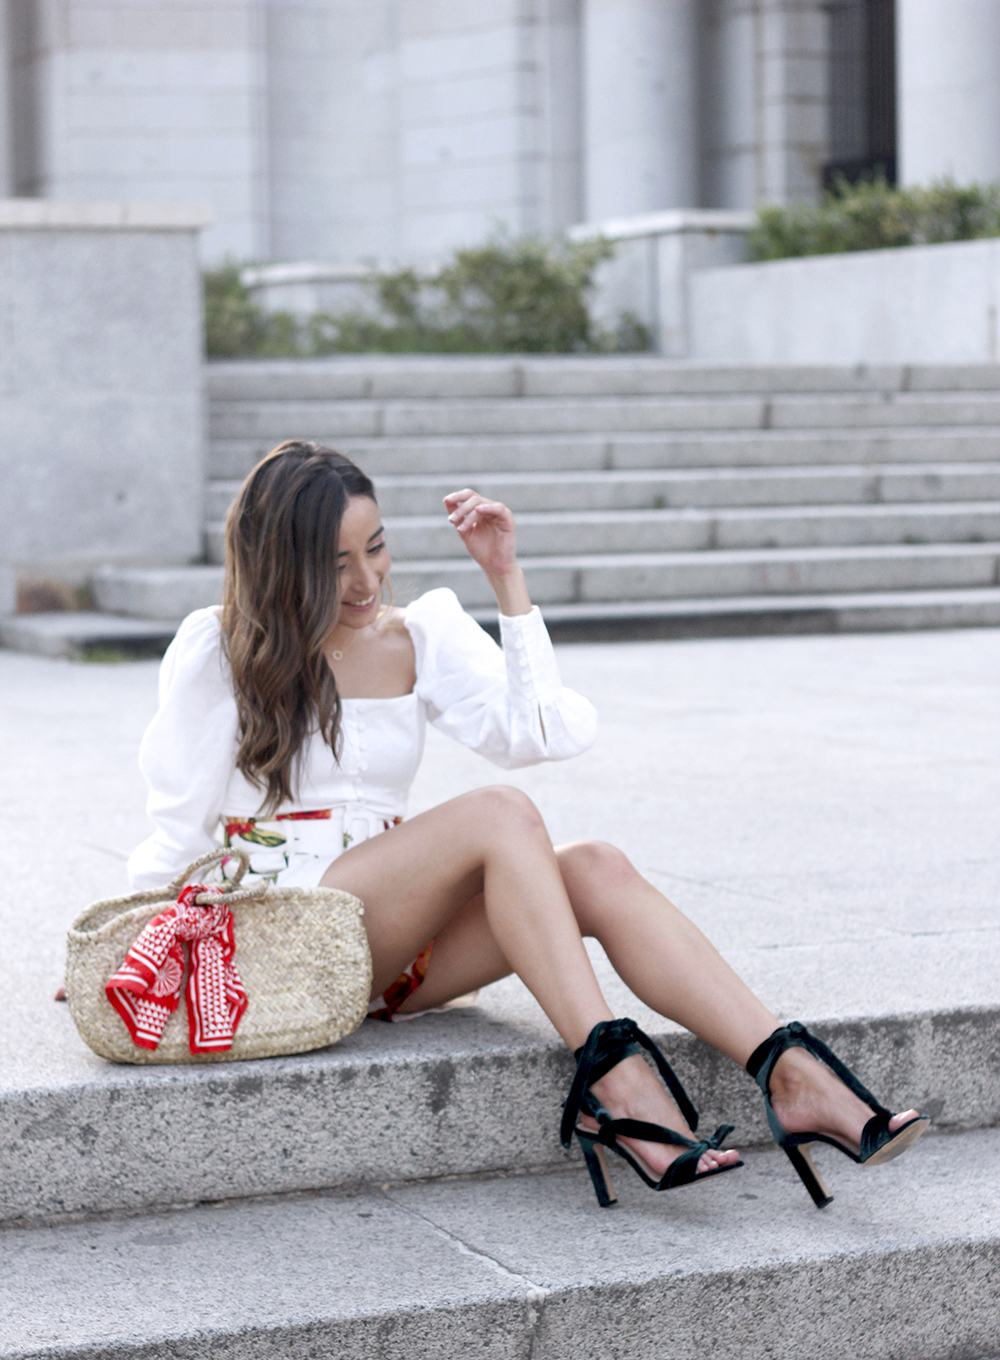 floral print shorts linnen top suede heels street style summer outfit 201912